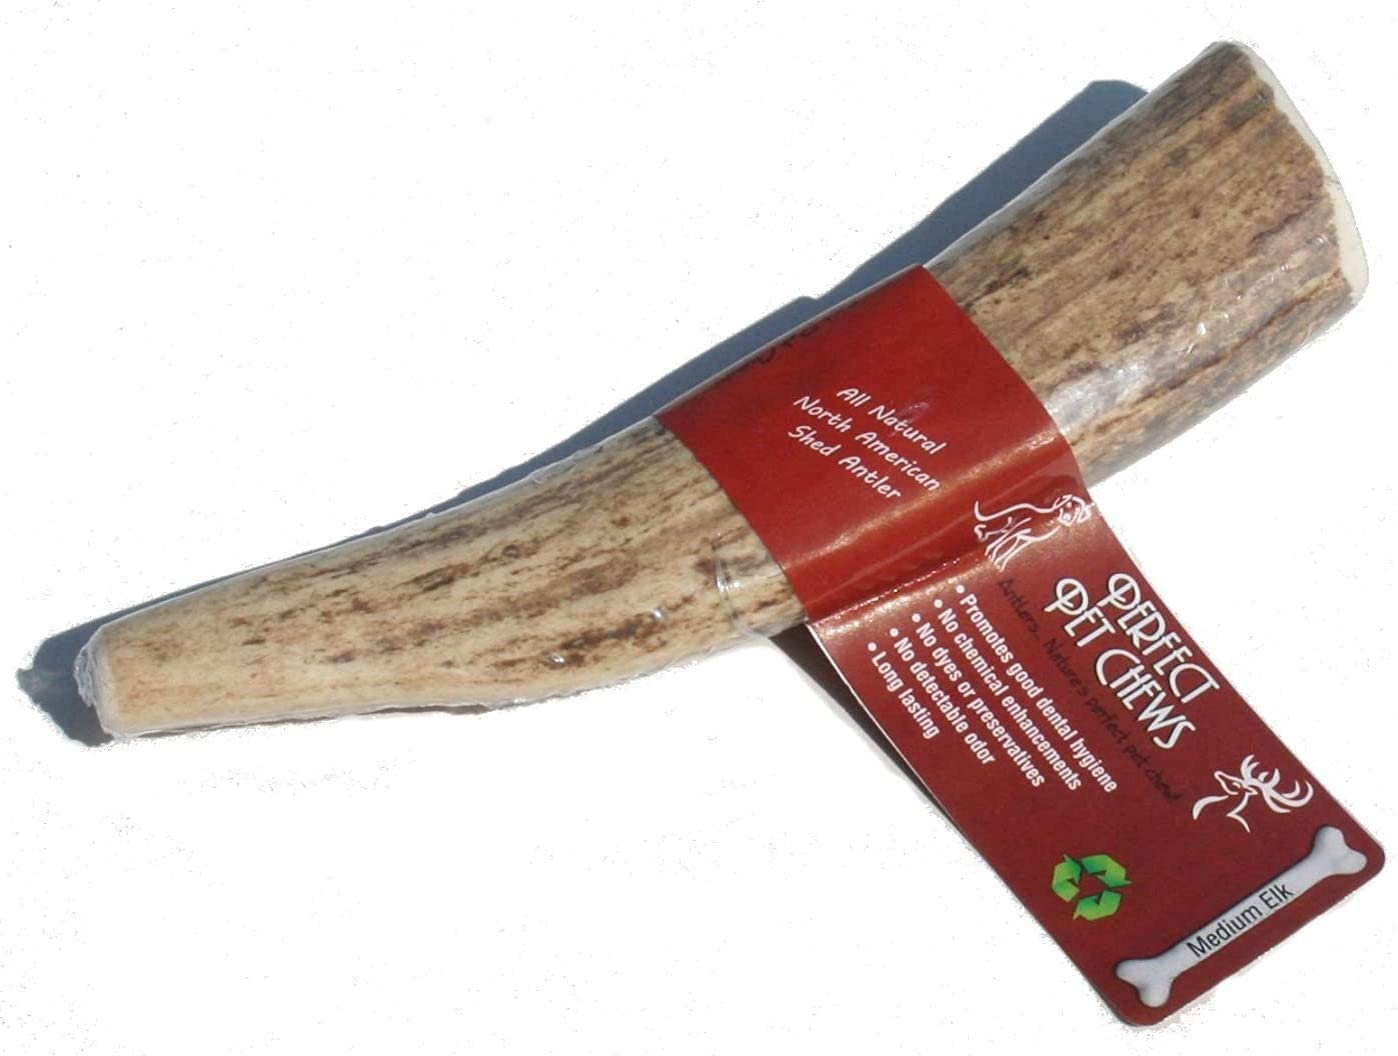 Perfect Pet Chews Elk Antler Dog Chew - Grade A, All Natural, Organic, and Long Lasting Treats - Made from Naturally Shed Antlers in The USA - Medium Treat